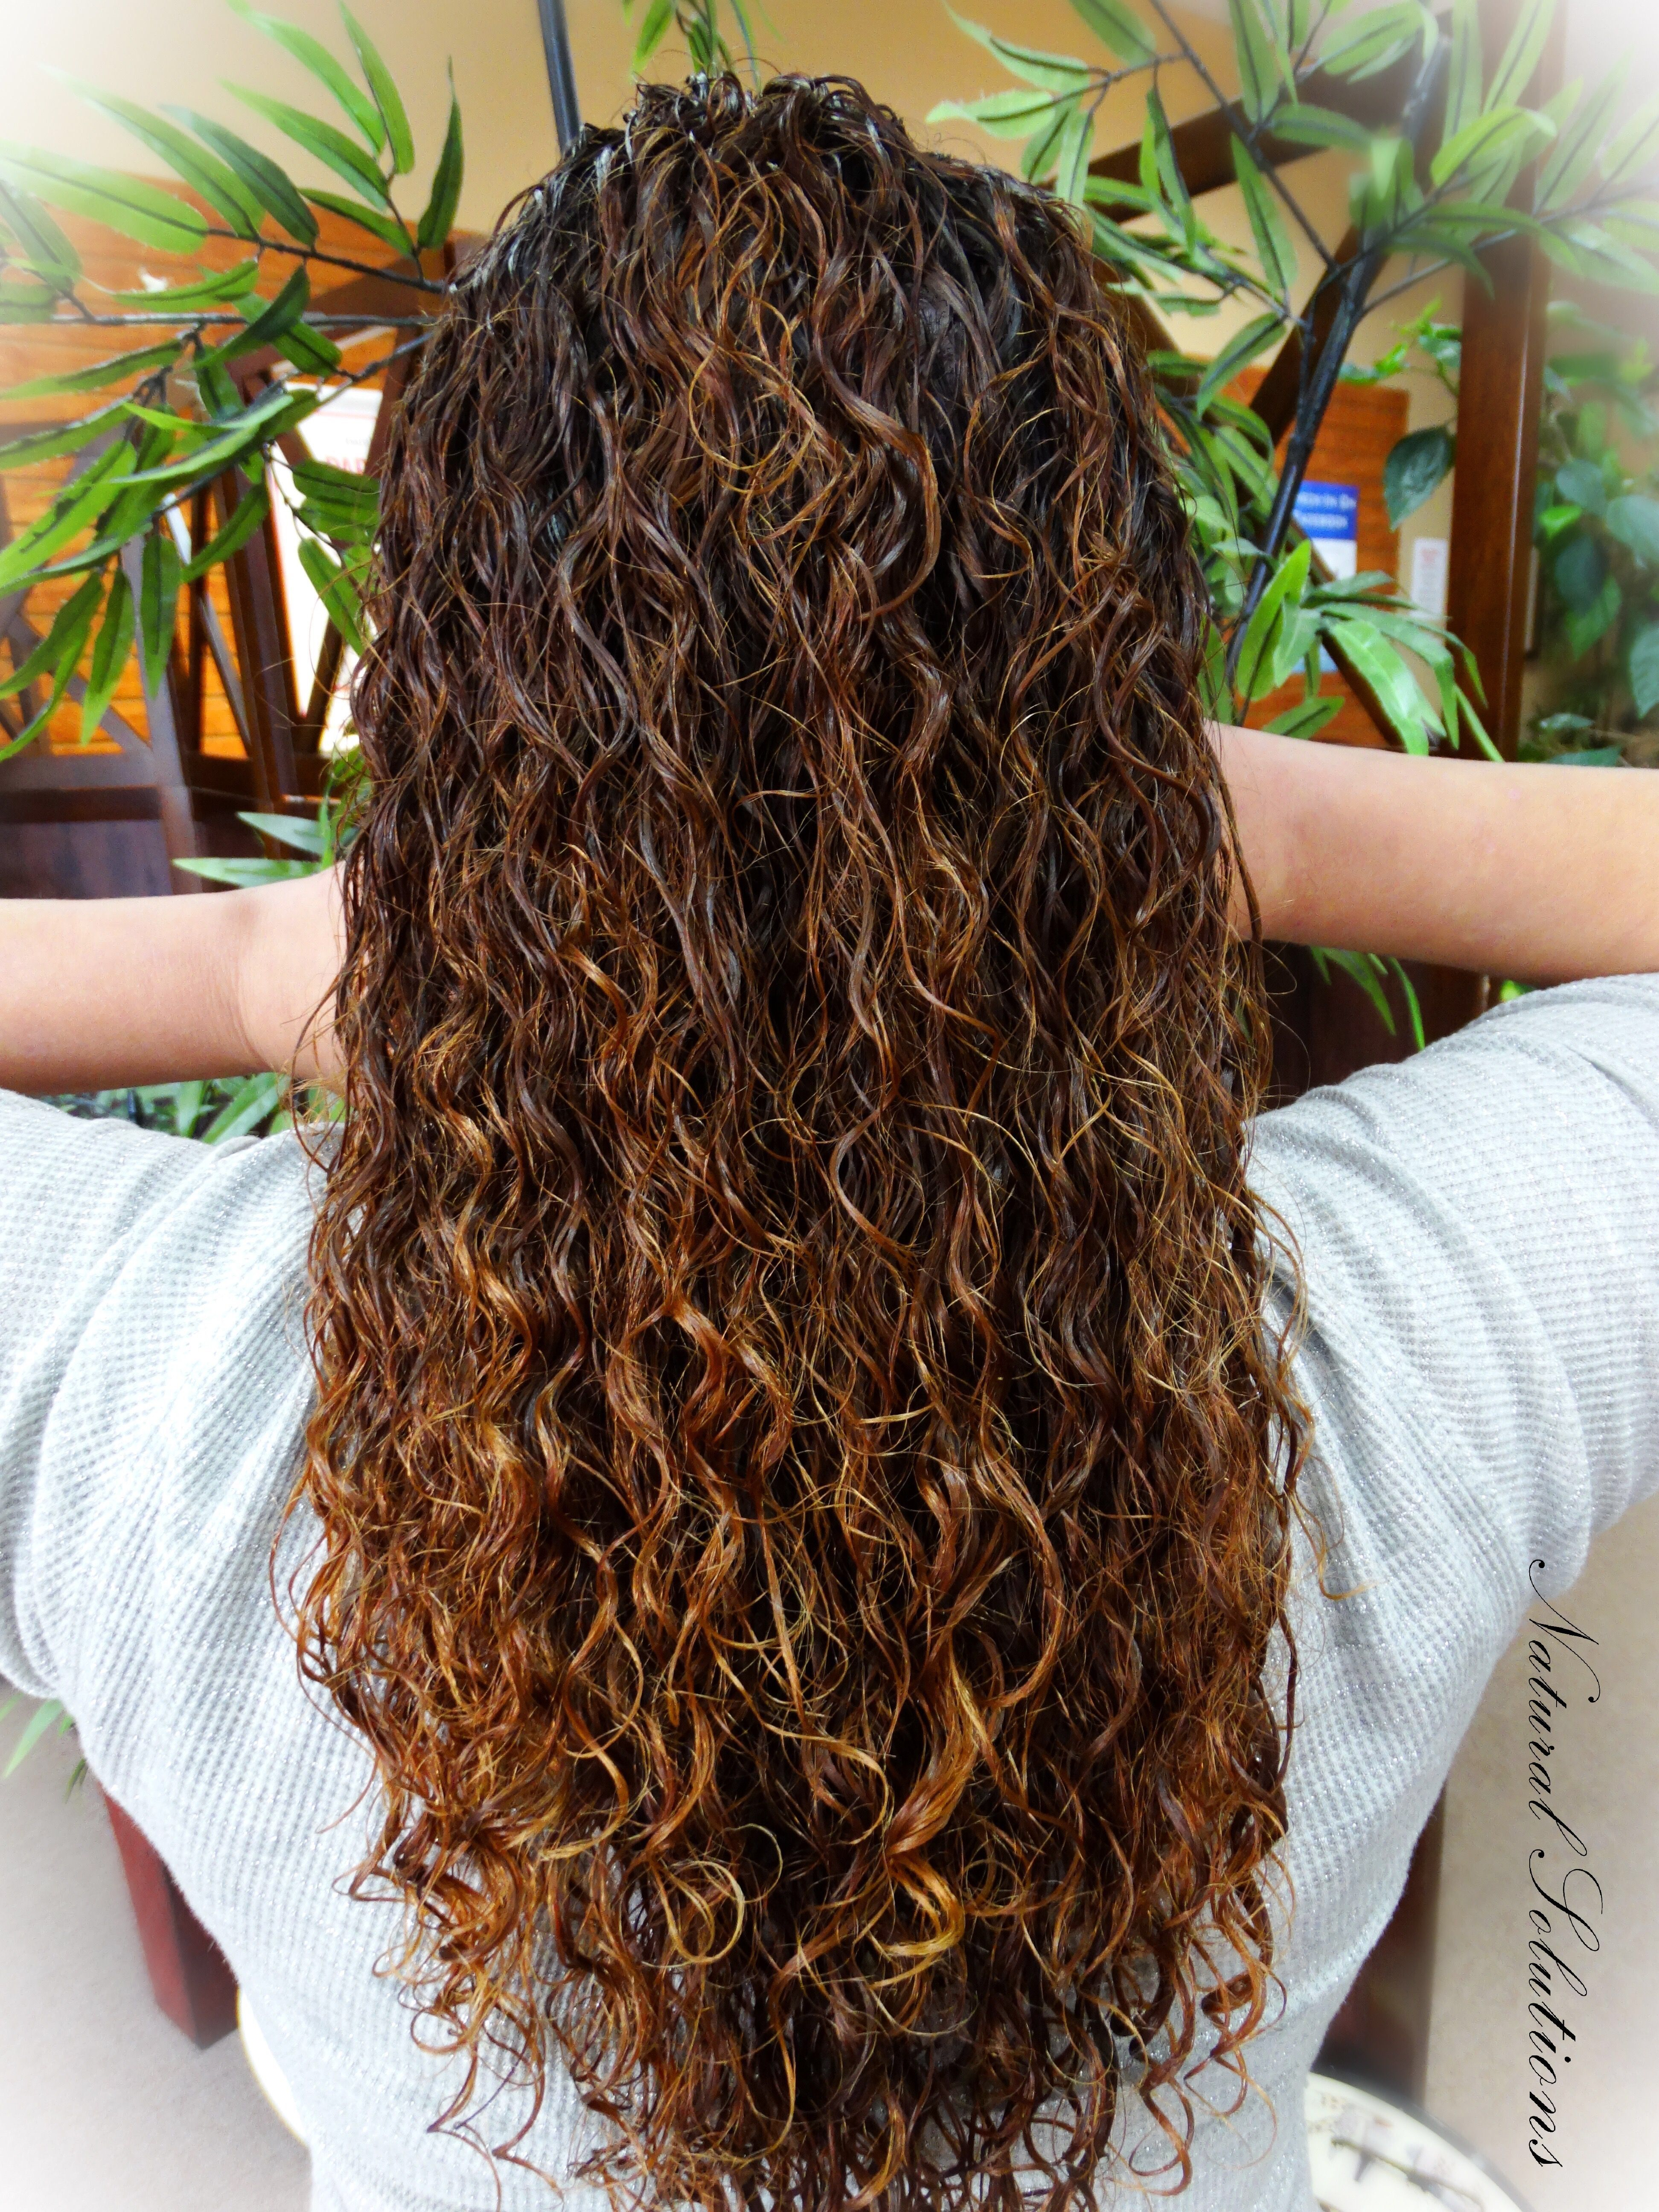 Pin On Healthier Perming Solutions From Salemohiosalon Natural Solutions In Salemohio 330 337 0703